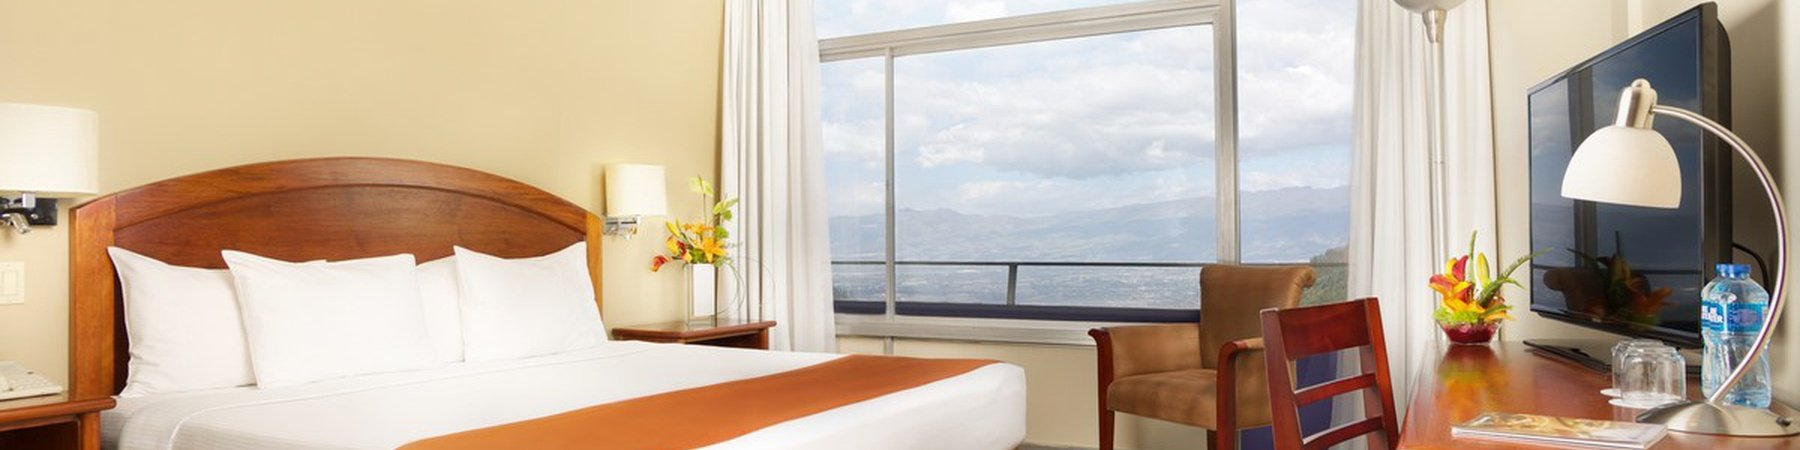 Rooms - Hotel Quito By Sercotel